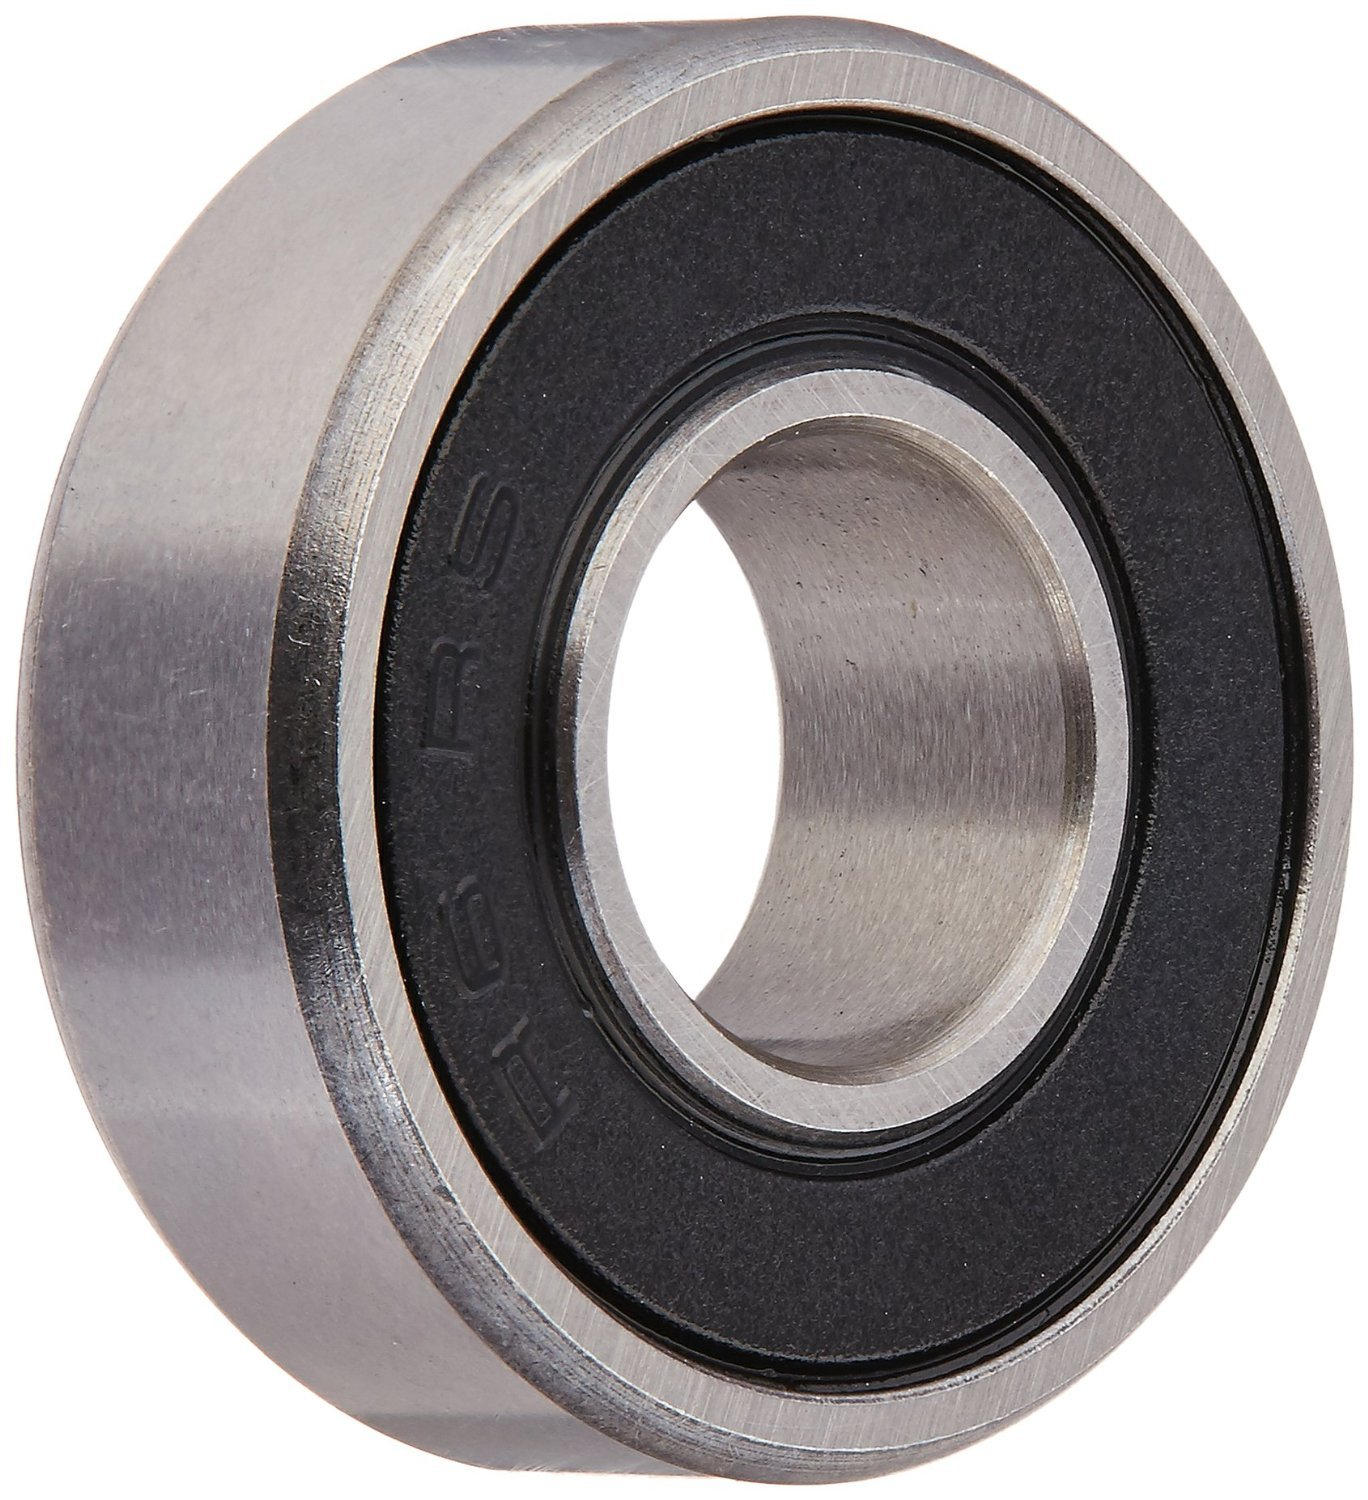 BC Precision BC-R6-2RS-2 Sealed Bearings 3/8 x 7/8 x 9/32 Ball Bearings/Pre-Lubricated (Pack of 2)